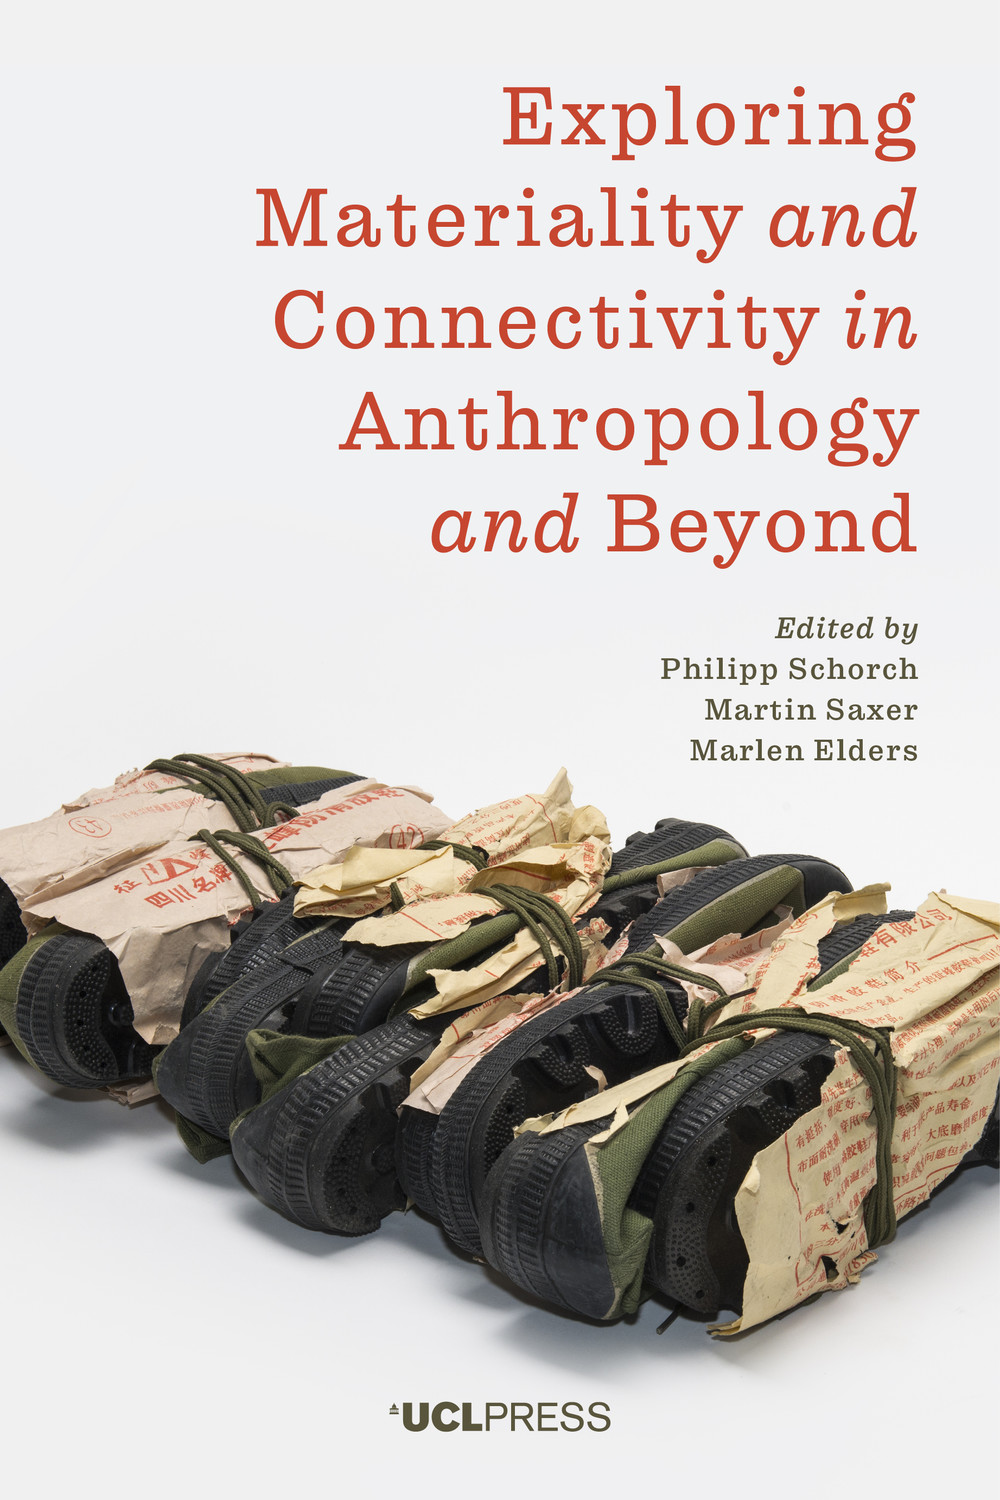 Exploring Materiality and Connectivity in Anthropology and Beyond